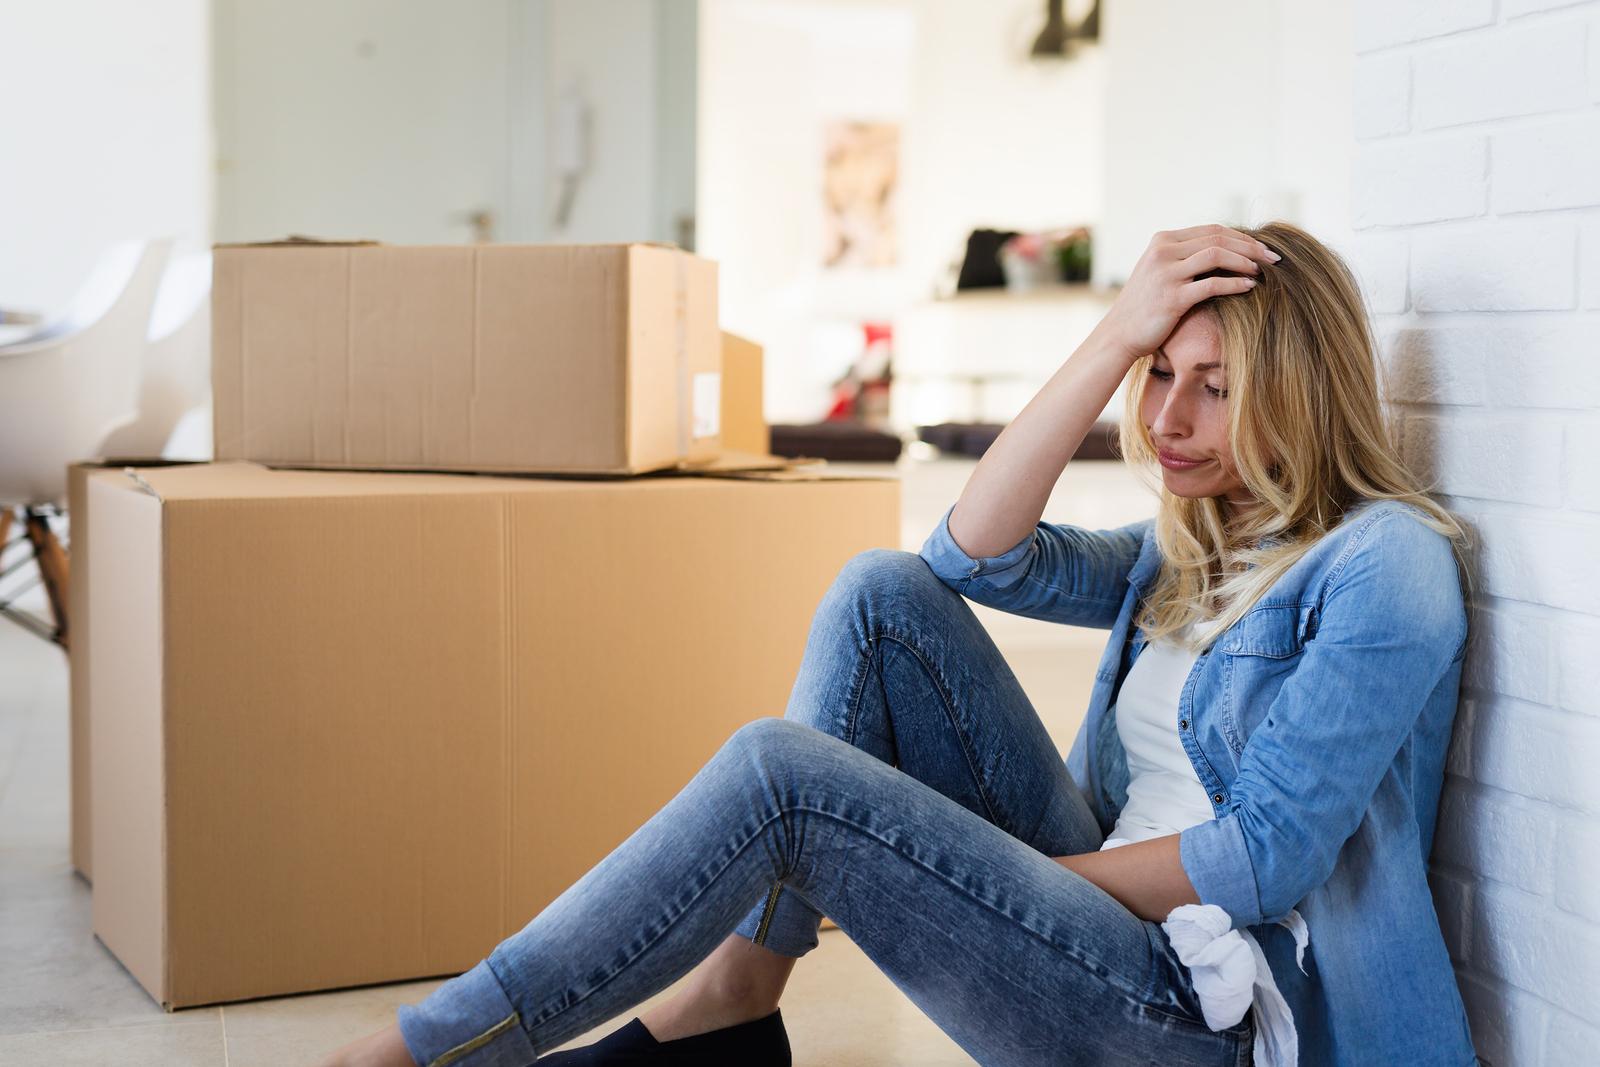 Why is moving so stressful, and what can be done to help reduce the anxiety that comes with it?